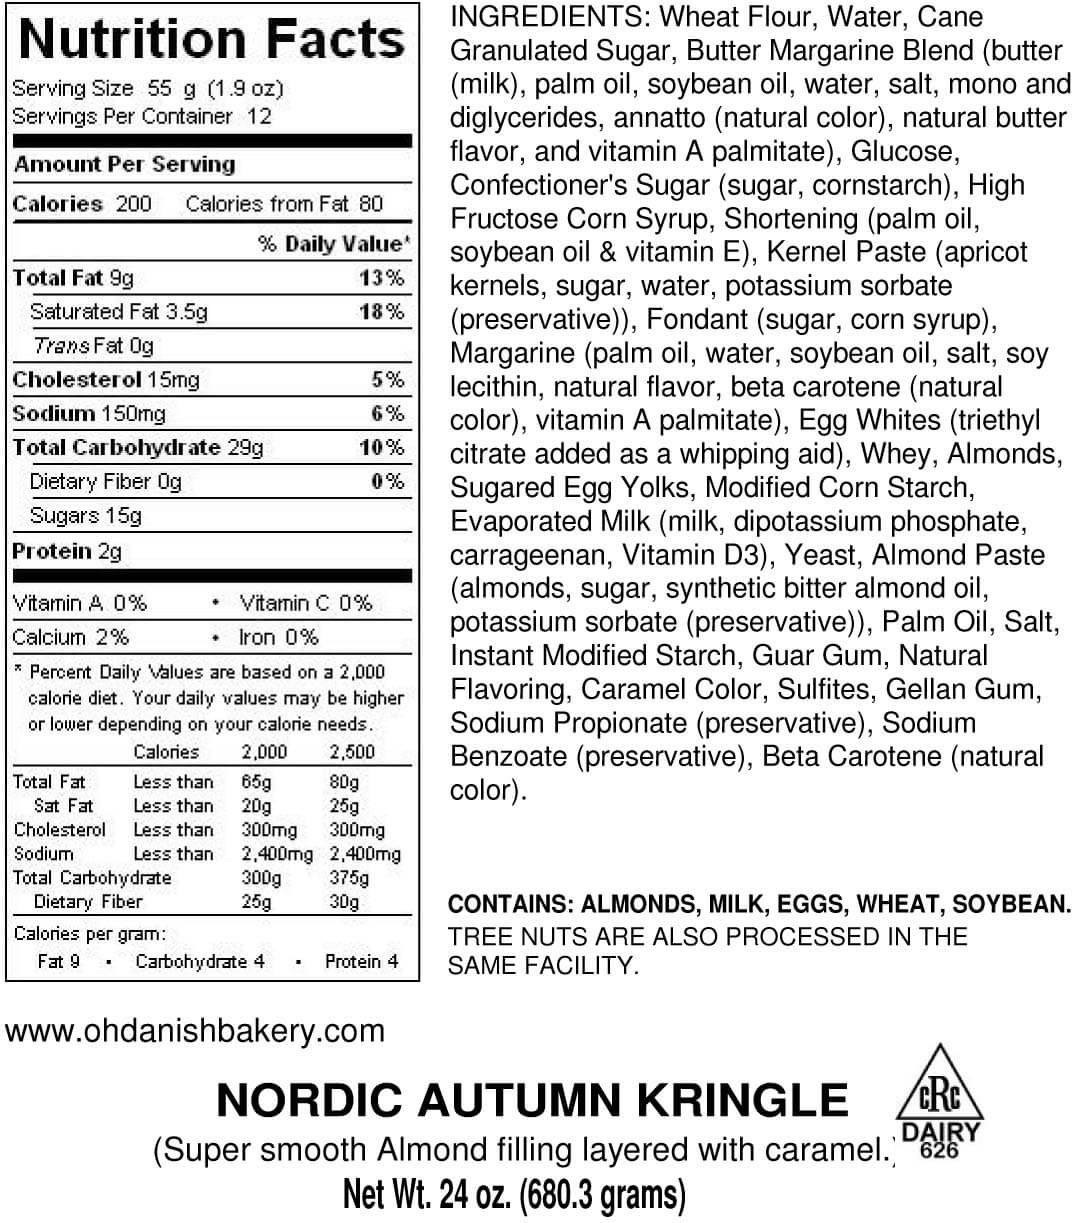 Nutritional Label for Nordic Autumn Kringle